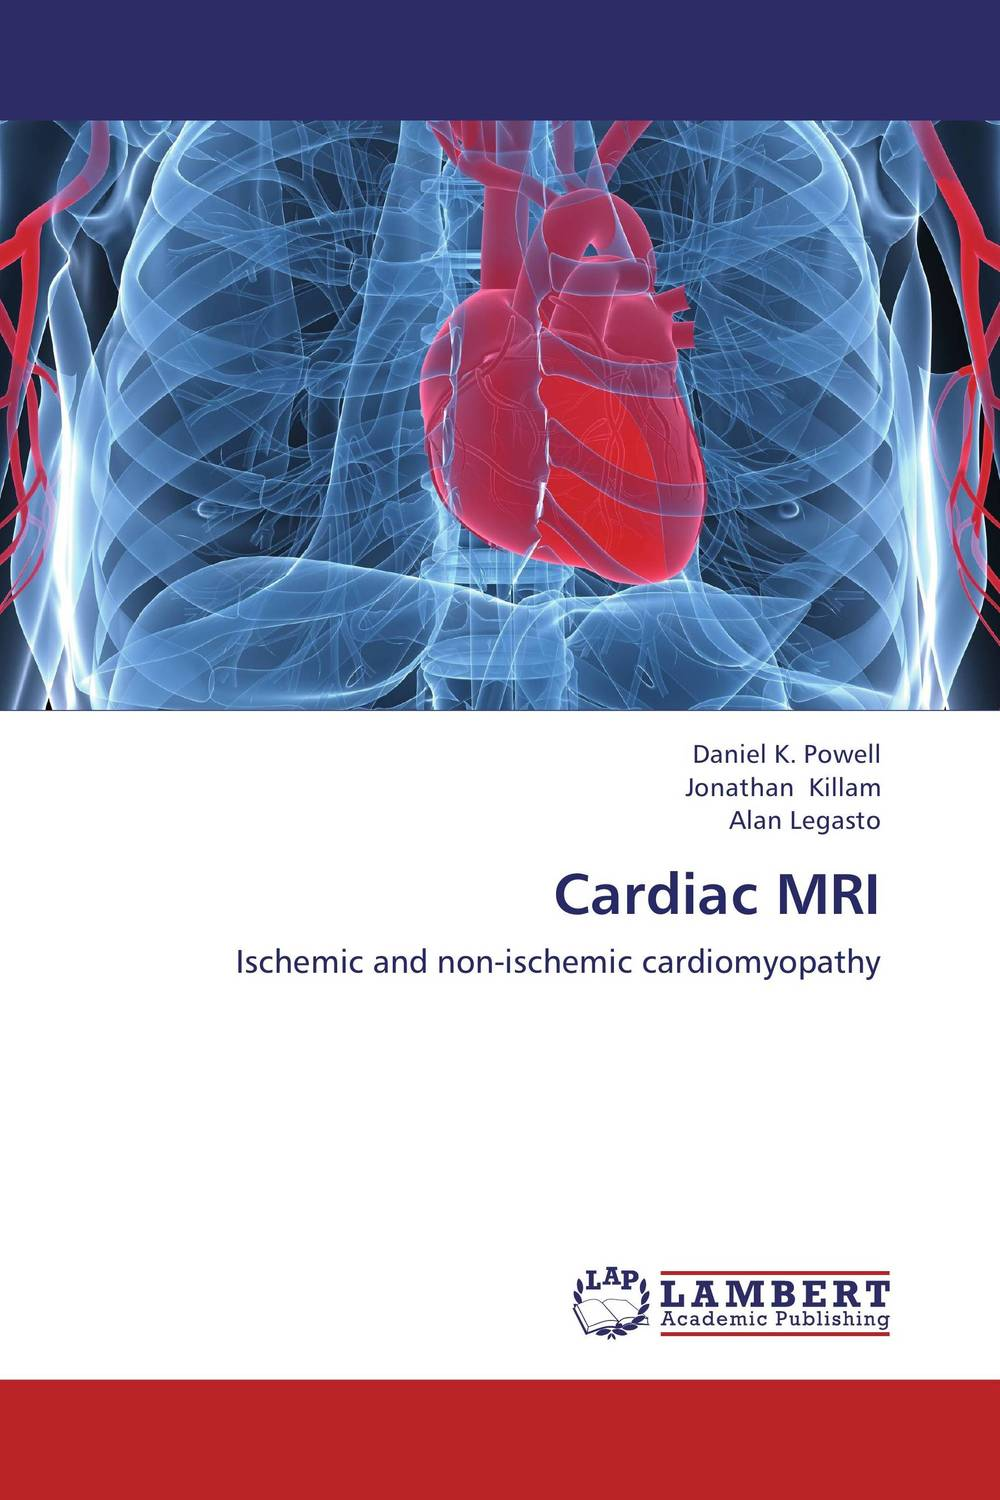 Cardiac MRI do snps underlie drug abuse and cardiac disease comorbidity